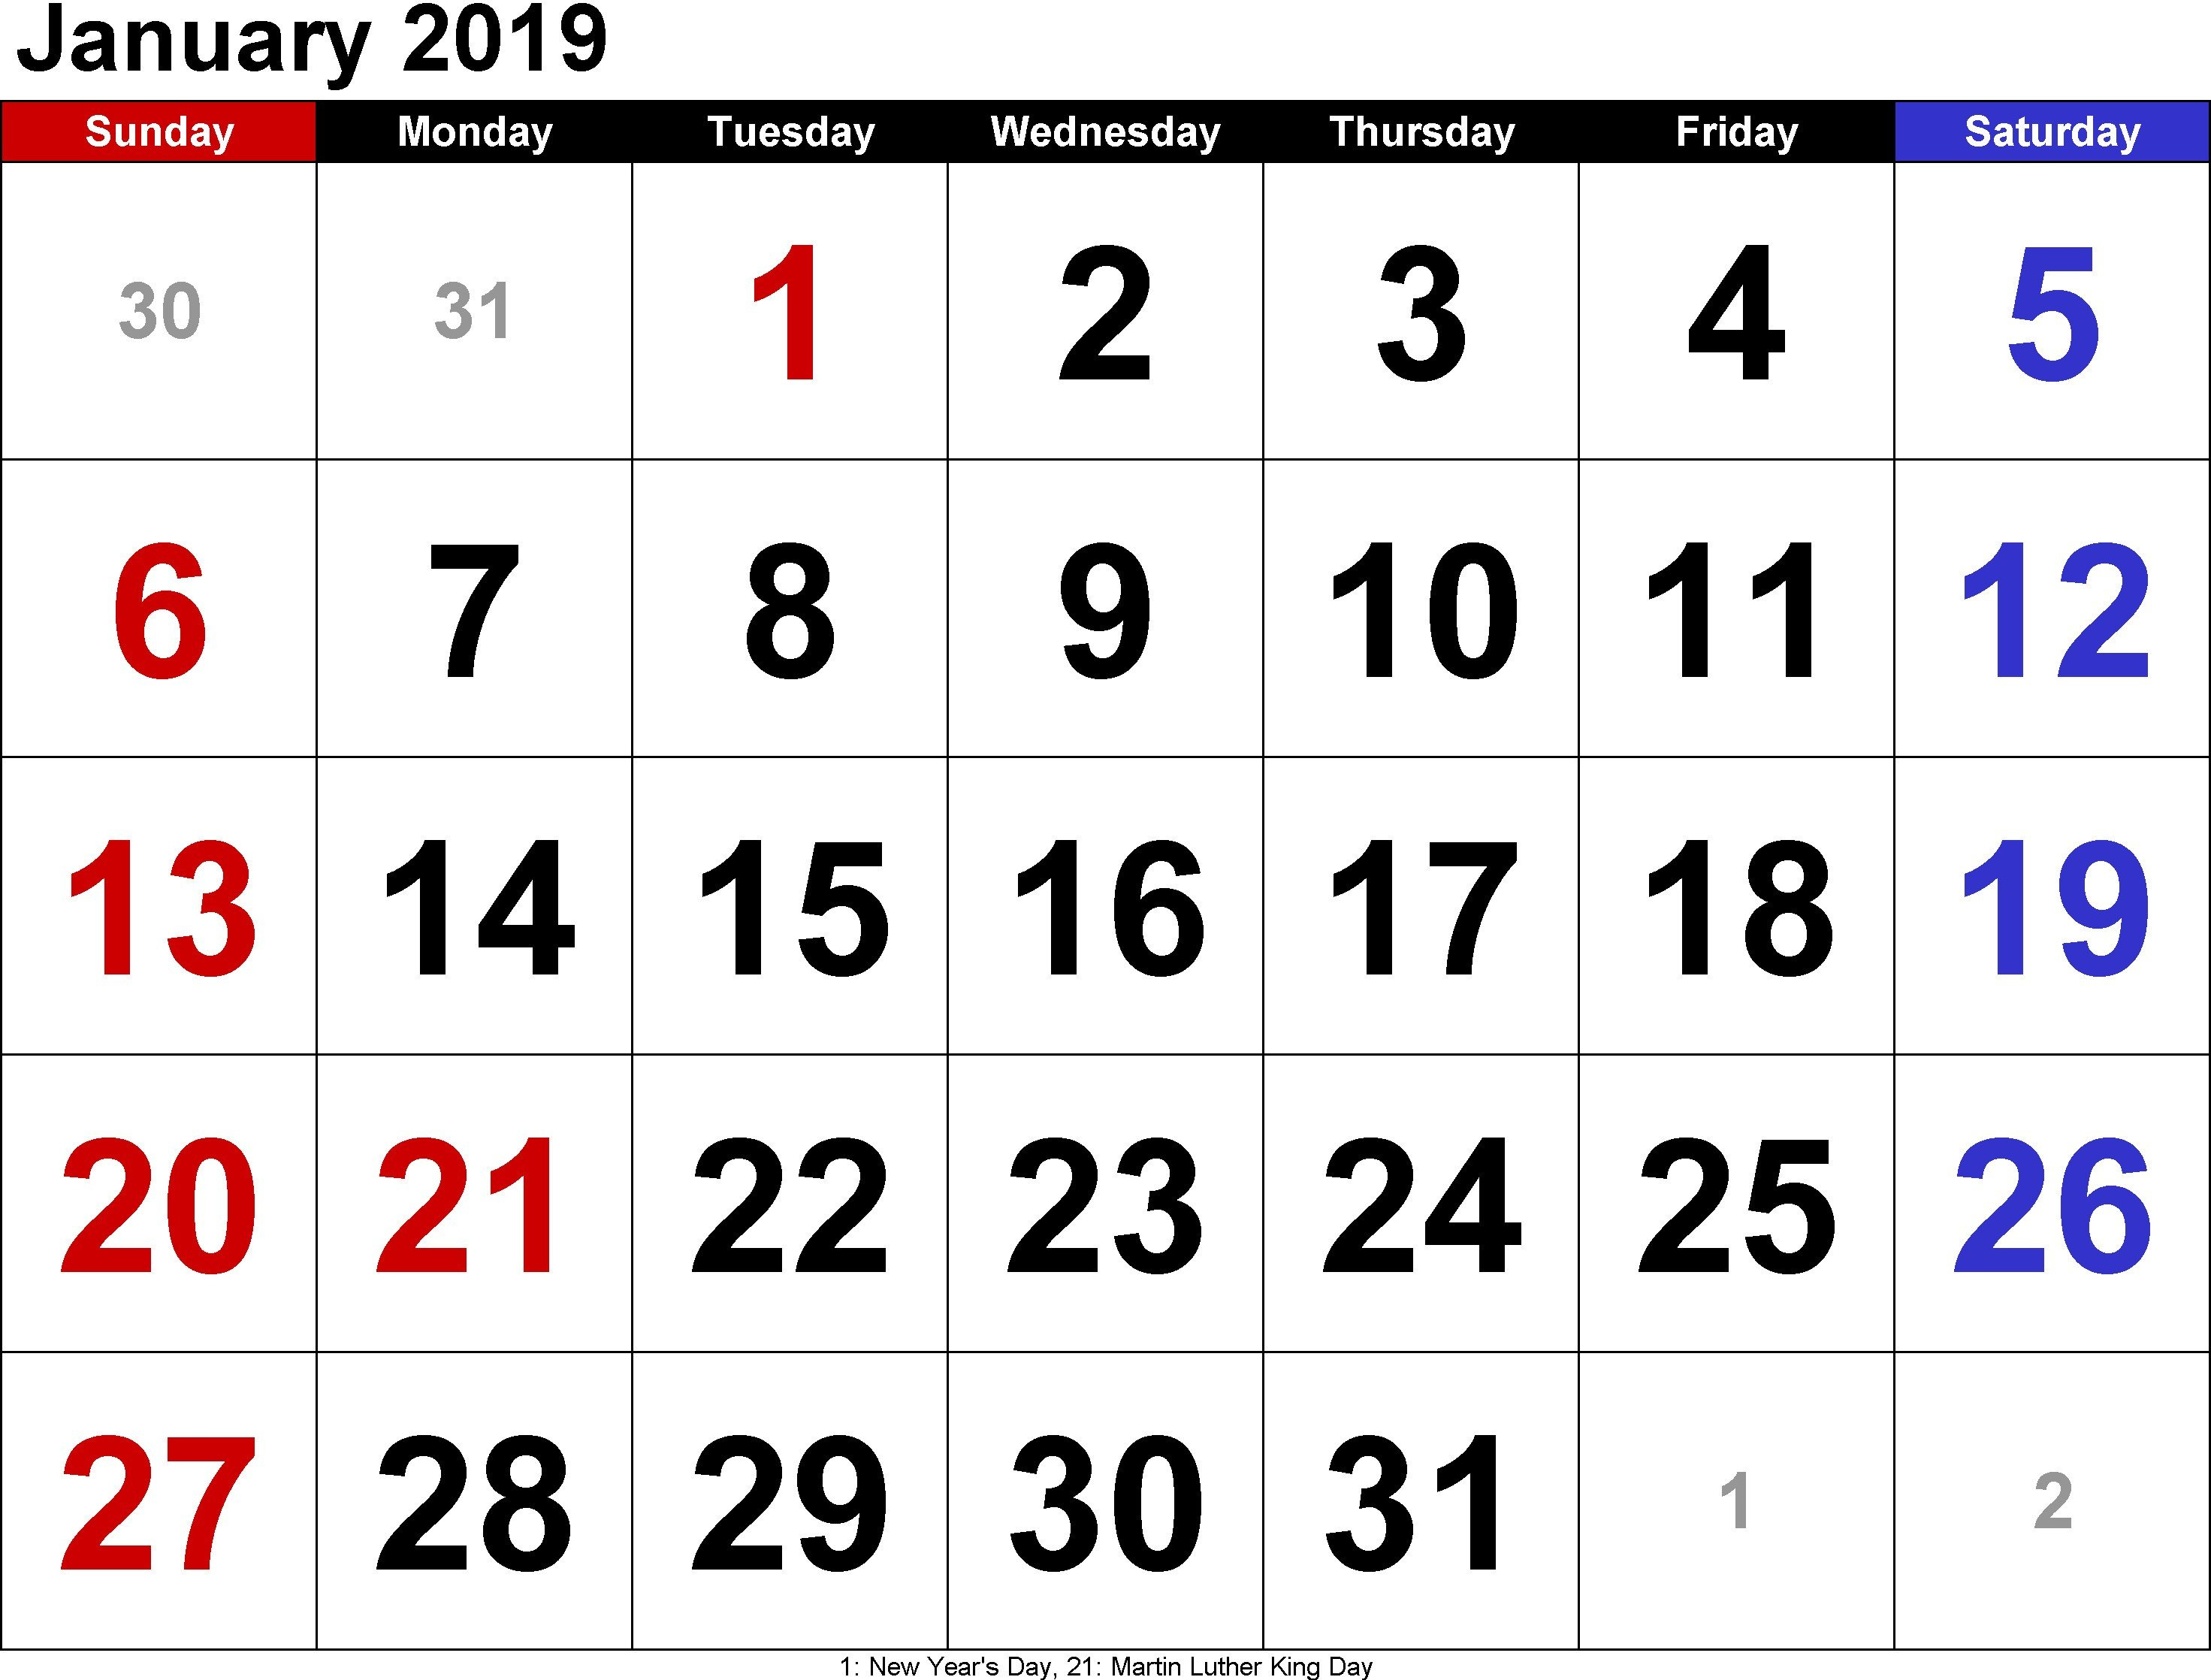 2019 January Calendar With Holidays Archives – Free March 2019 January 6 2019 Calendar